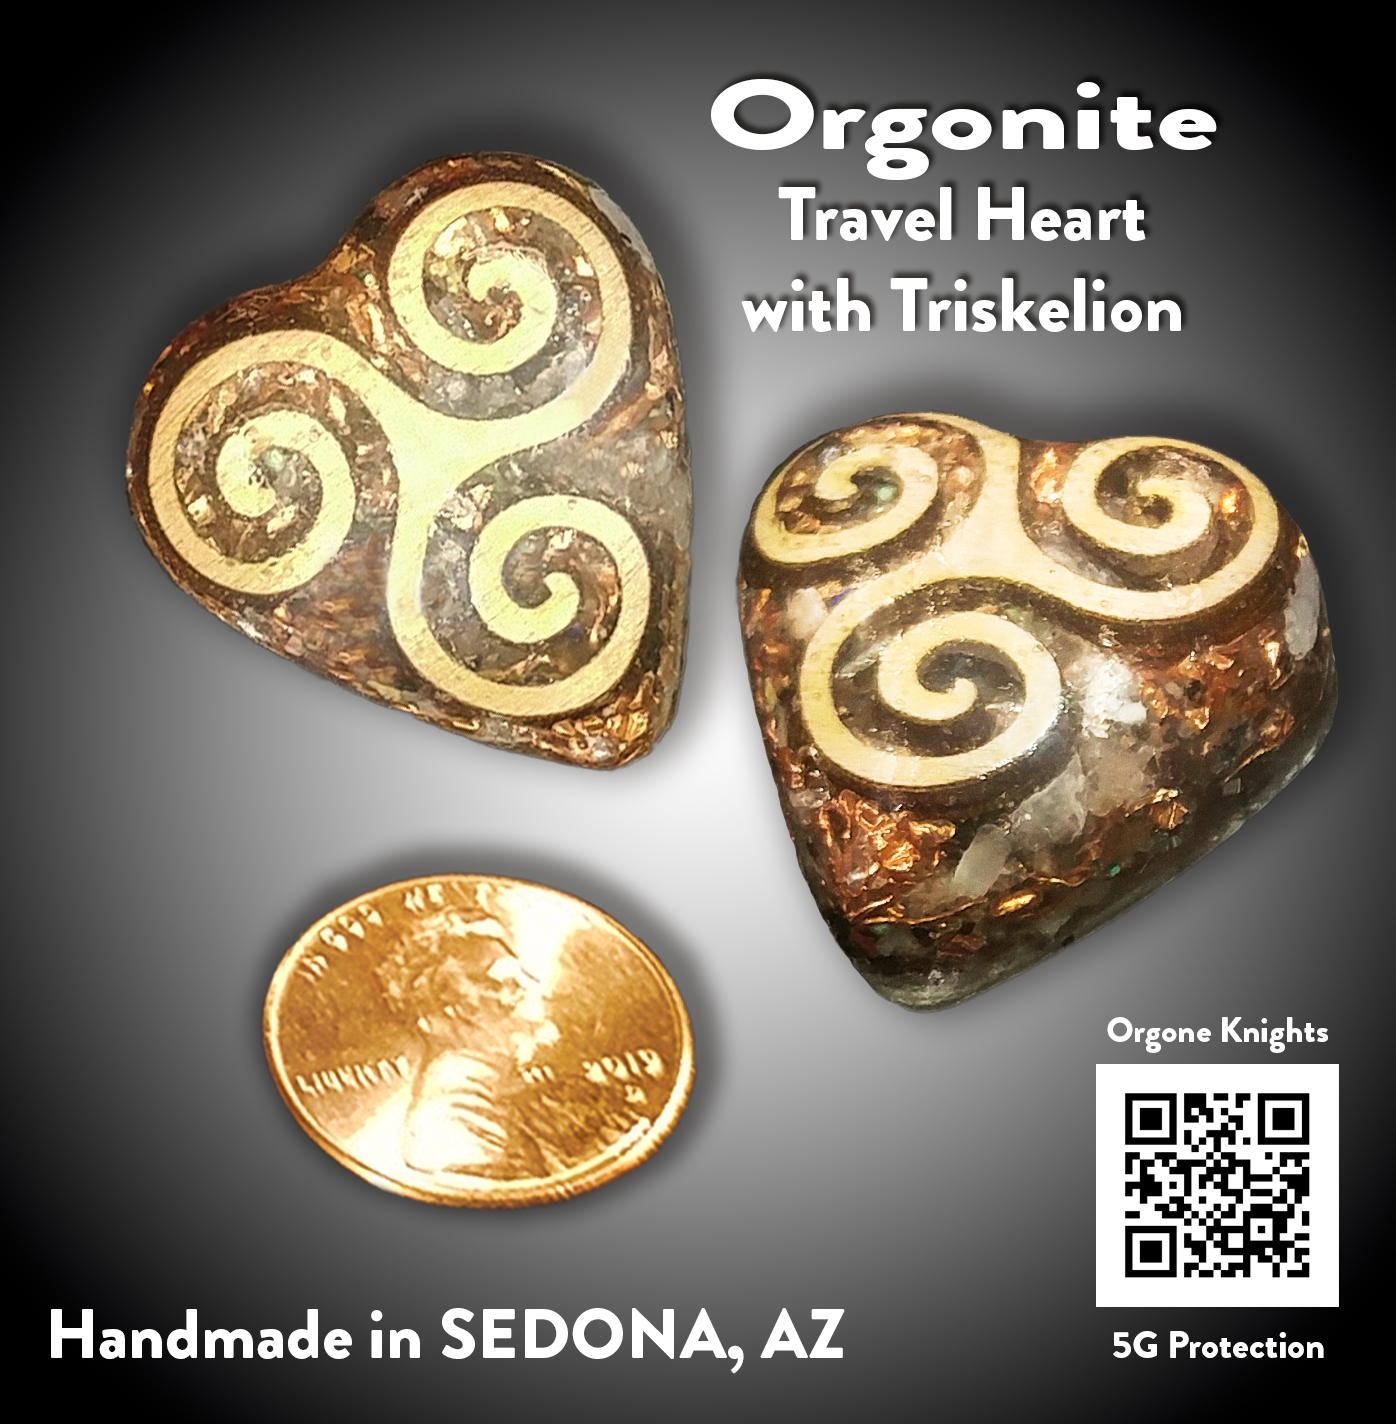 Travel Heart with Triskelion Orgonite